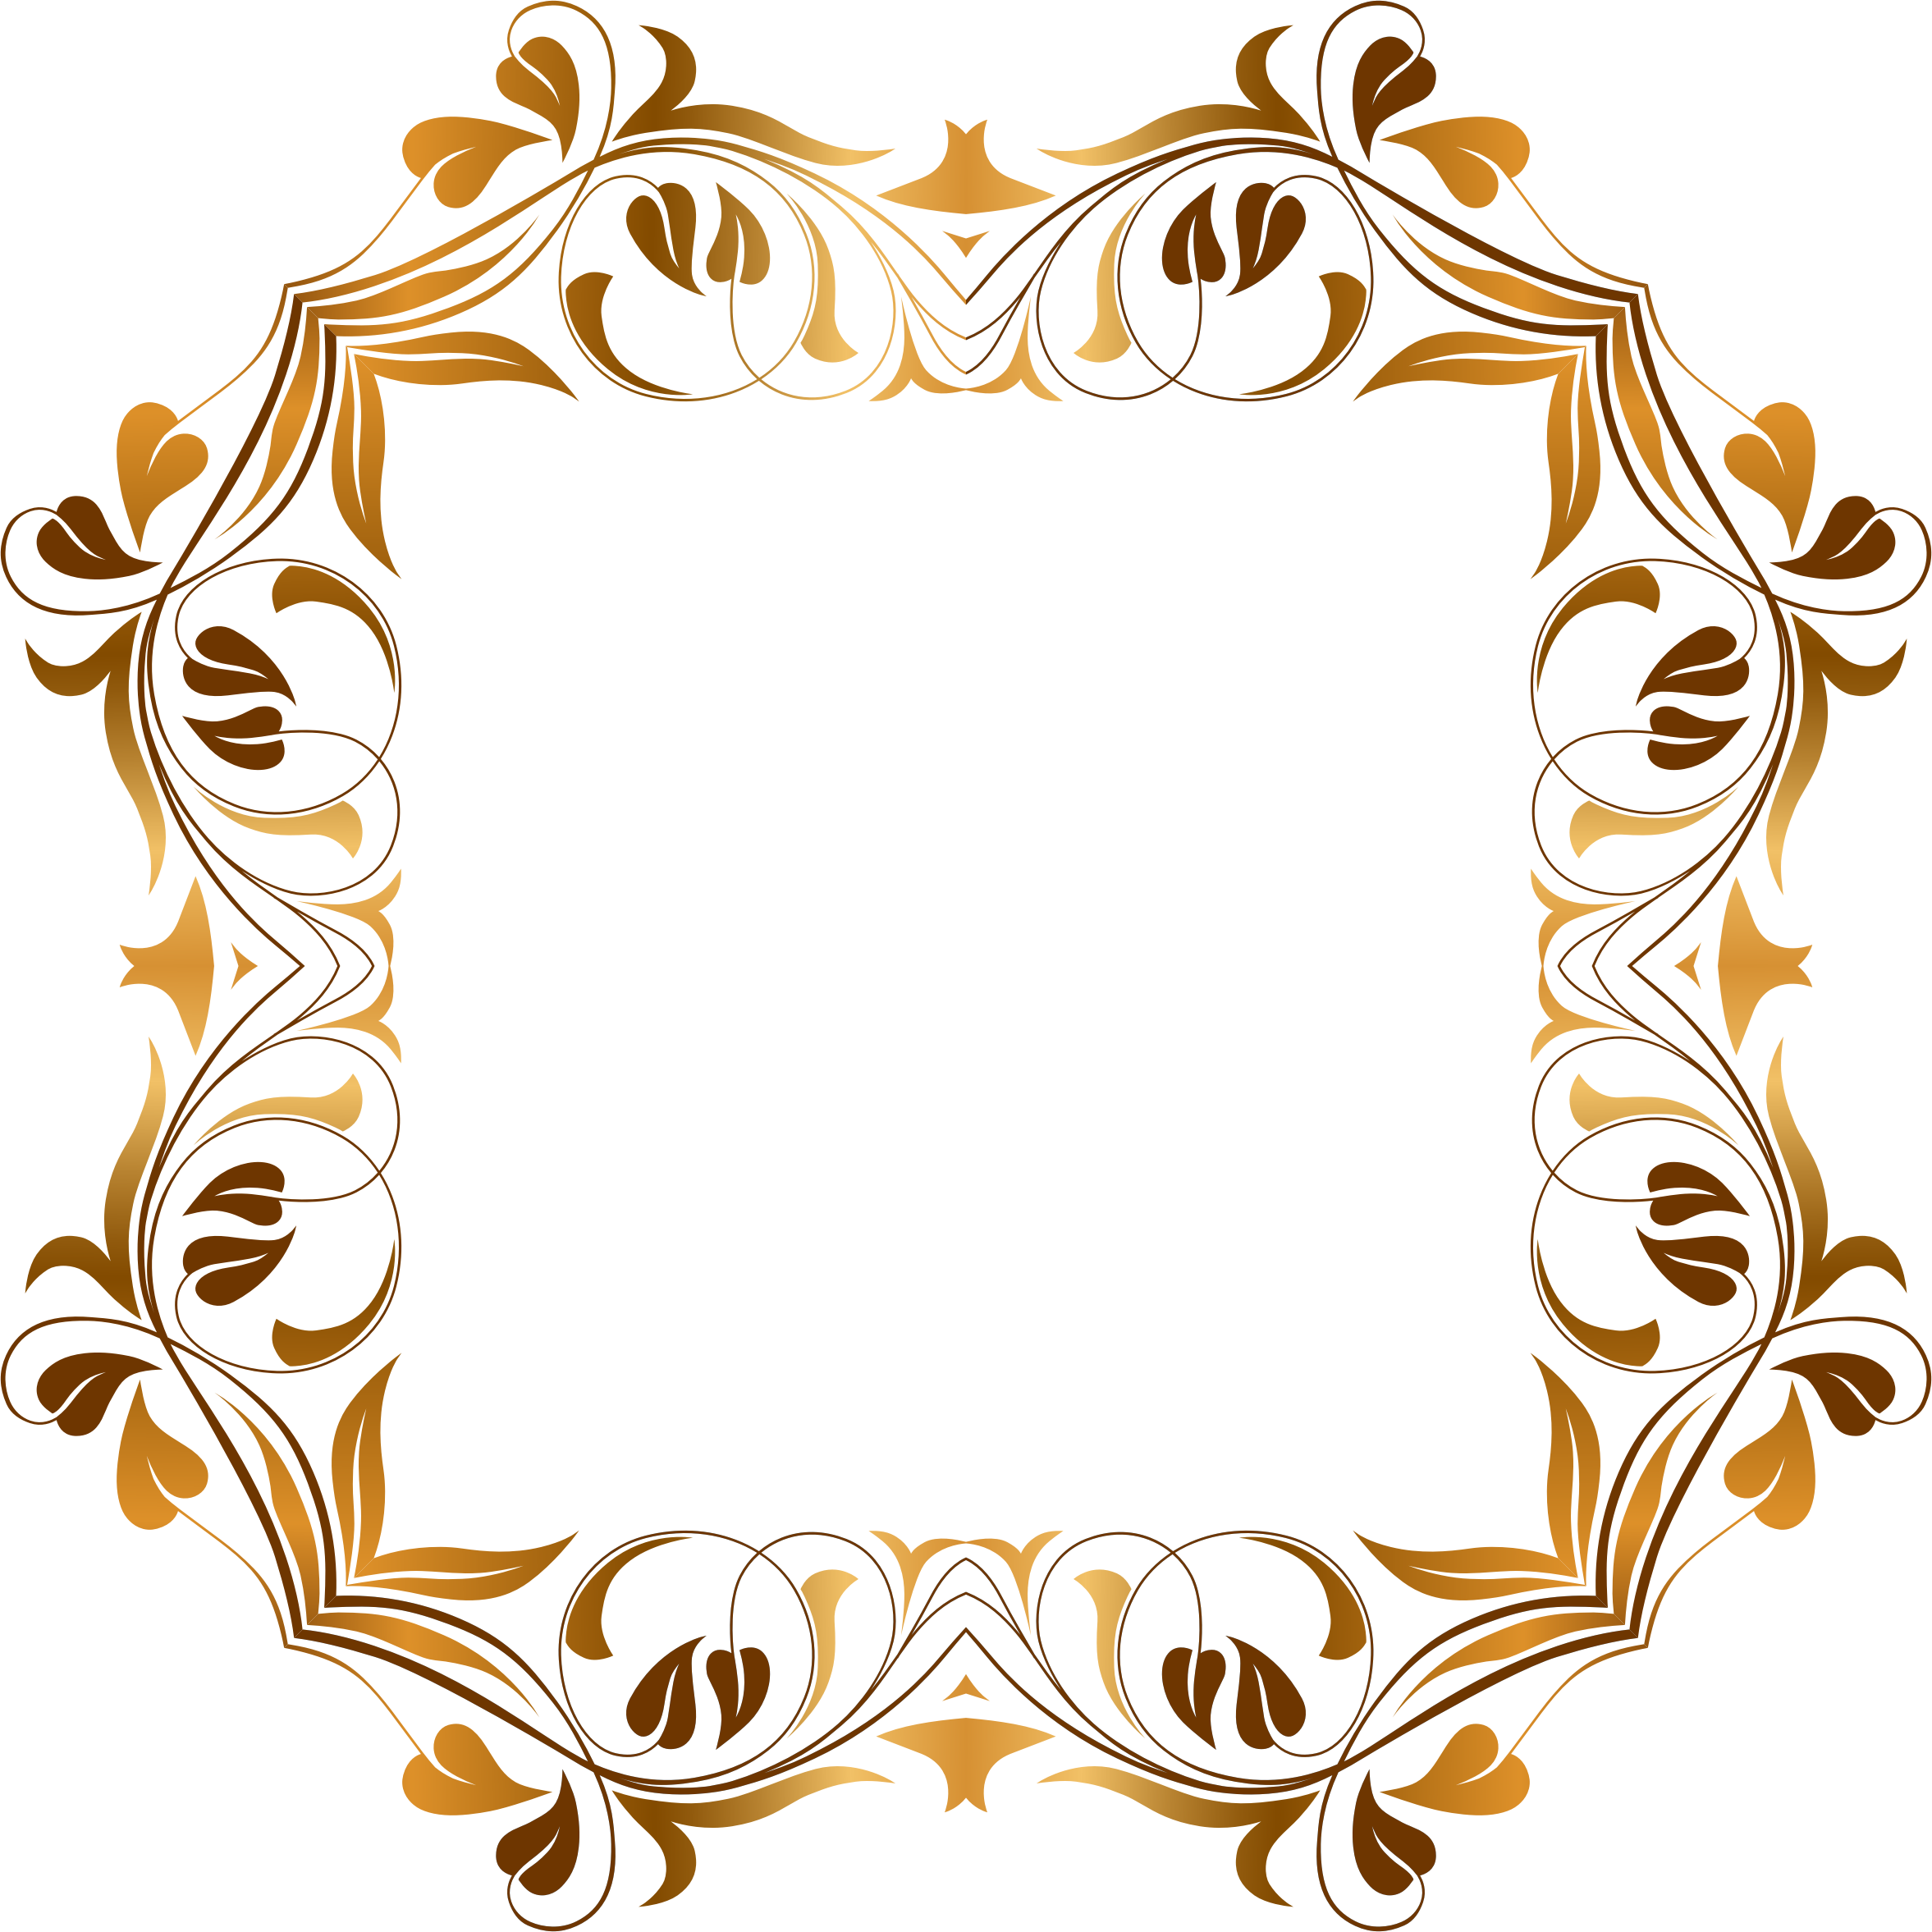 Floral Flourish Frame By Gdj Floral Frame On Openclipart